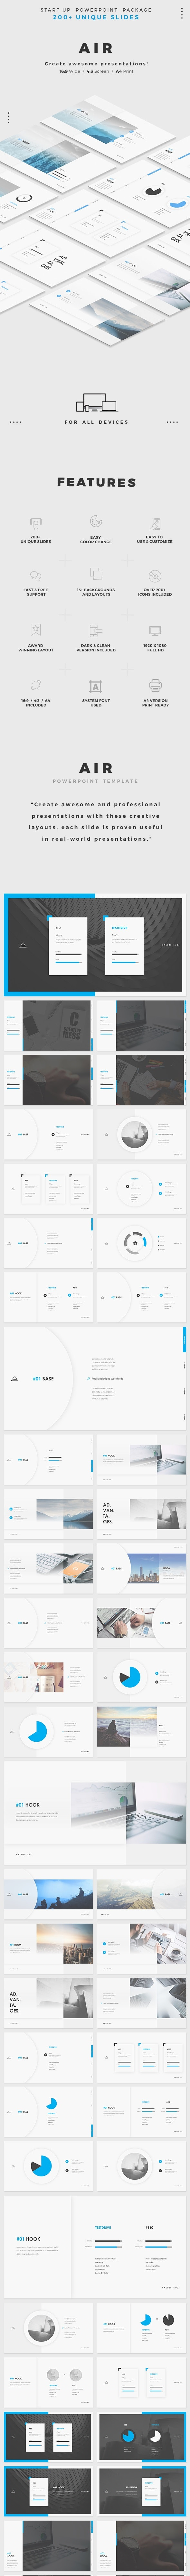 AIR Powerpoint - PowerPoint Templates Presentation Templates